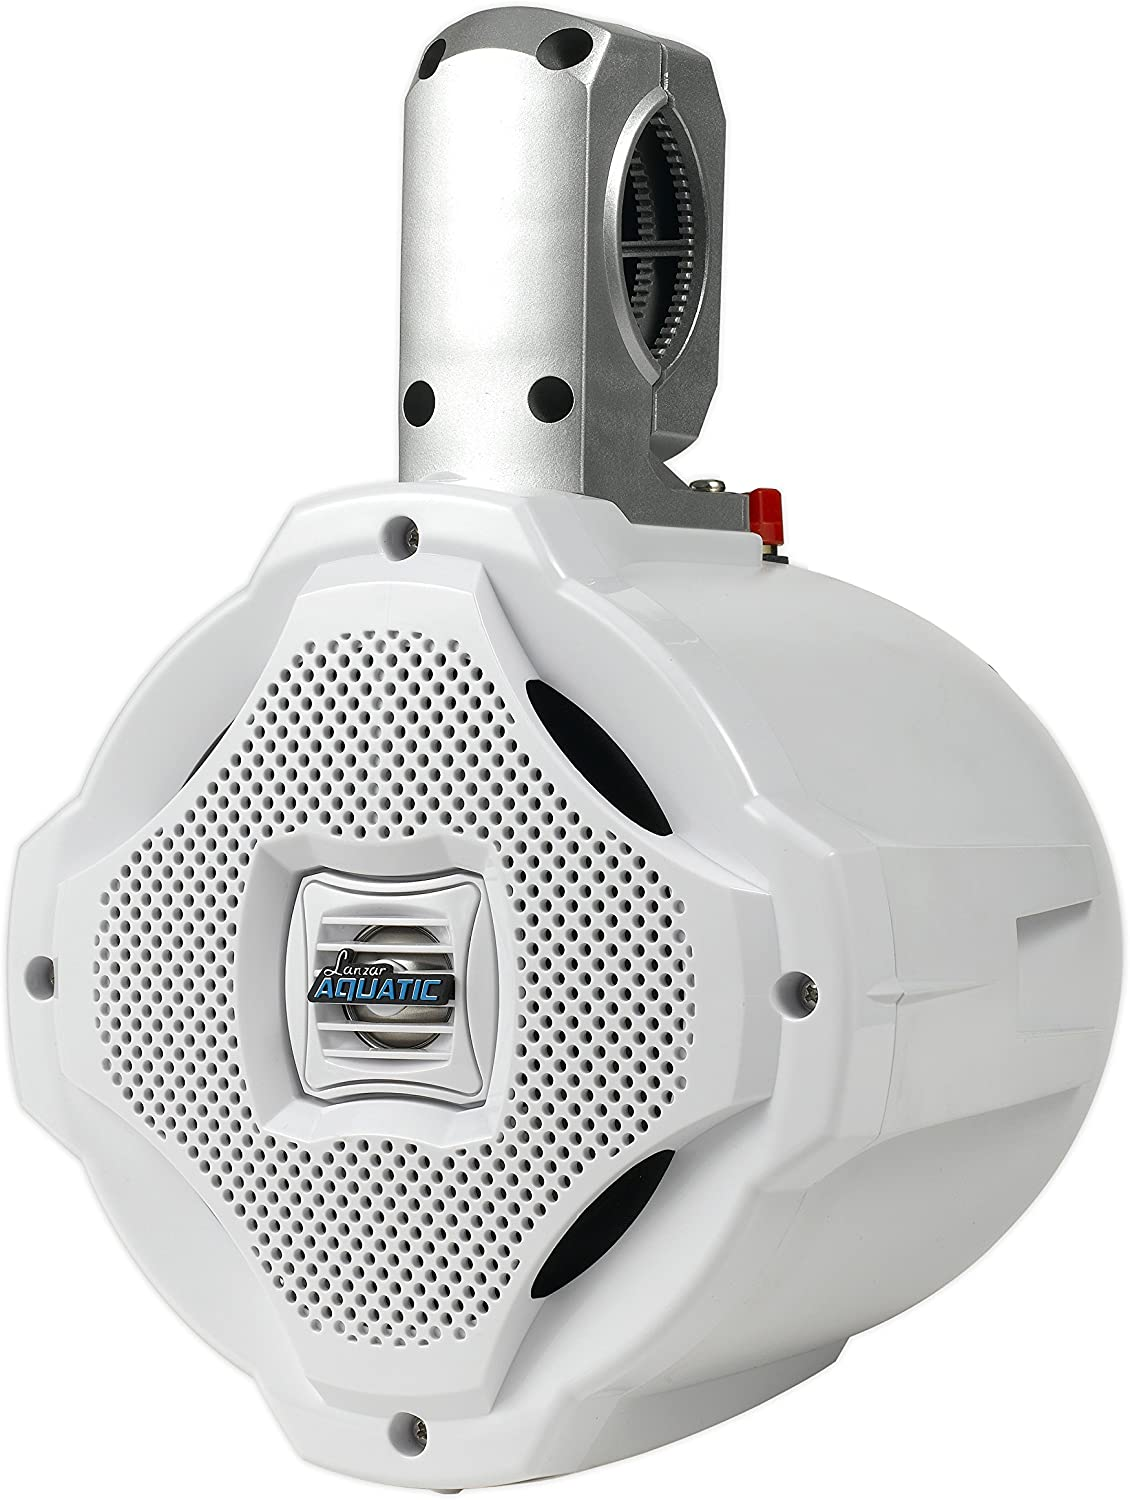 in a Heavy Duty ABS Enclosure White Bluetooth Marine Wakeboard Tower Speaker Lanzar AQAWBS64WT 6.5 Inch 1000 Watt Two Way Audio Water Resistant Boat Sound System